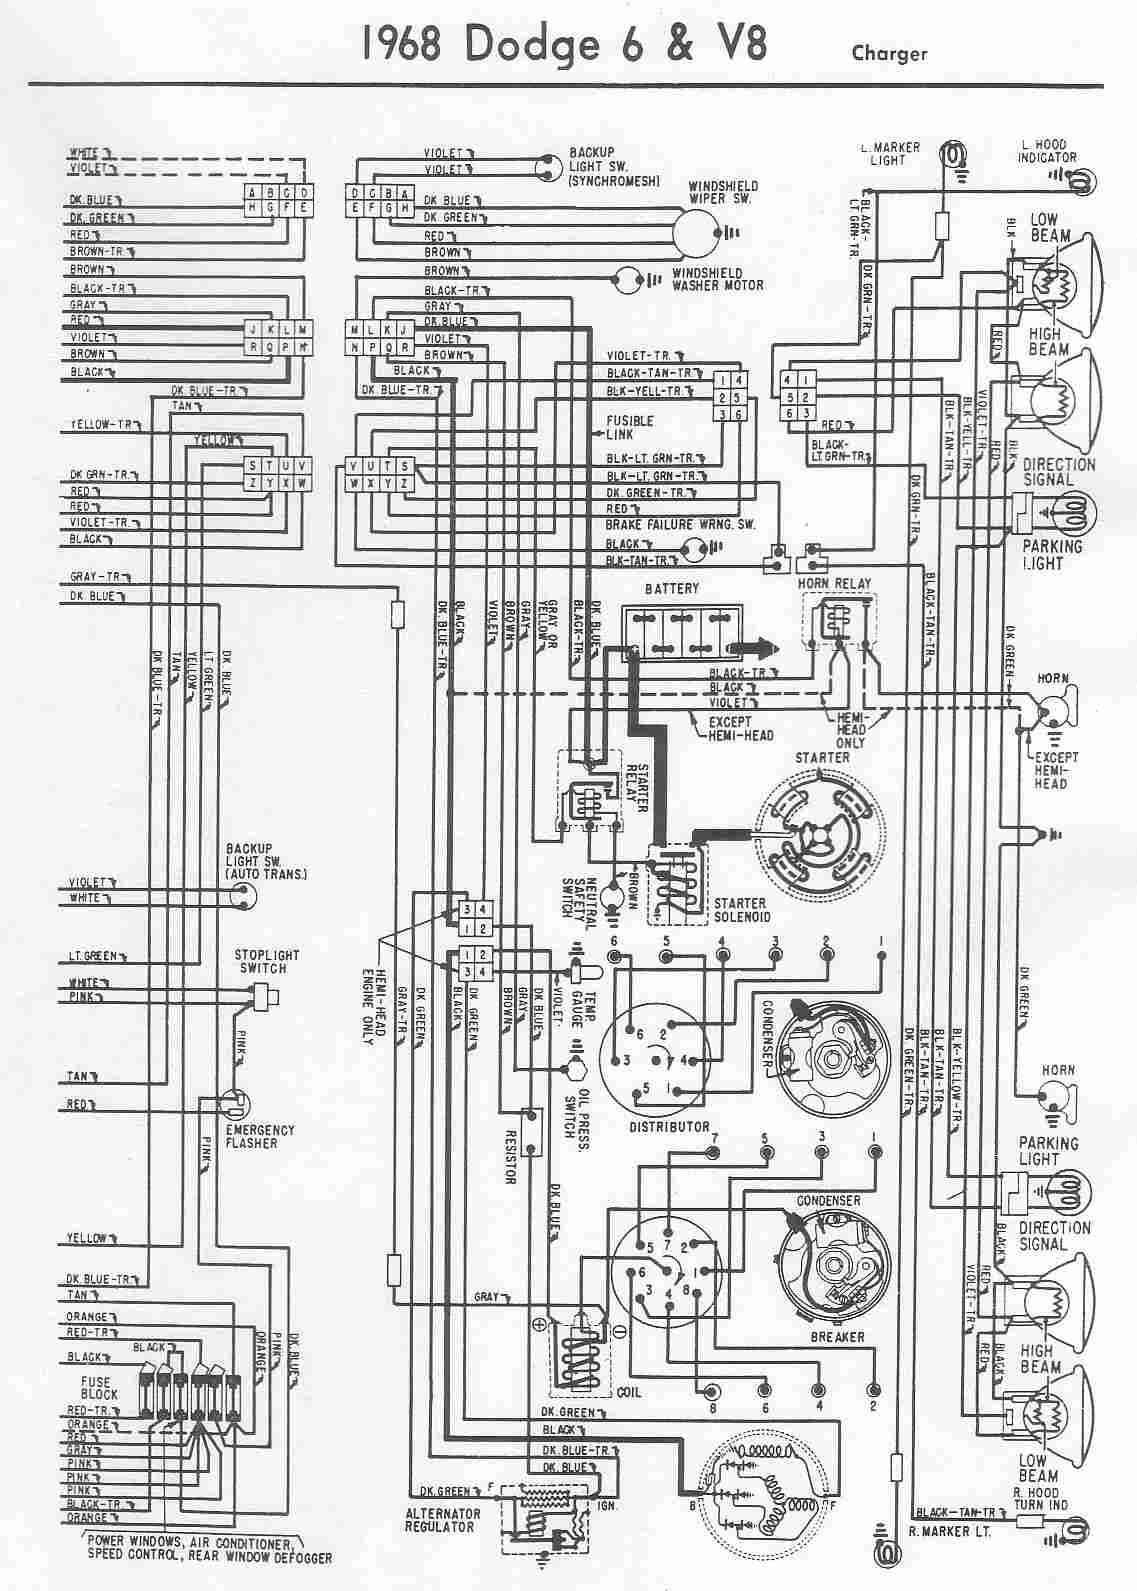 Dodge Car Manuals Wiring Diagrams Pdf Fault Codes 1978 Aspen Diagram Download